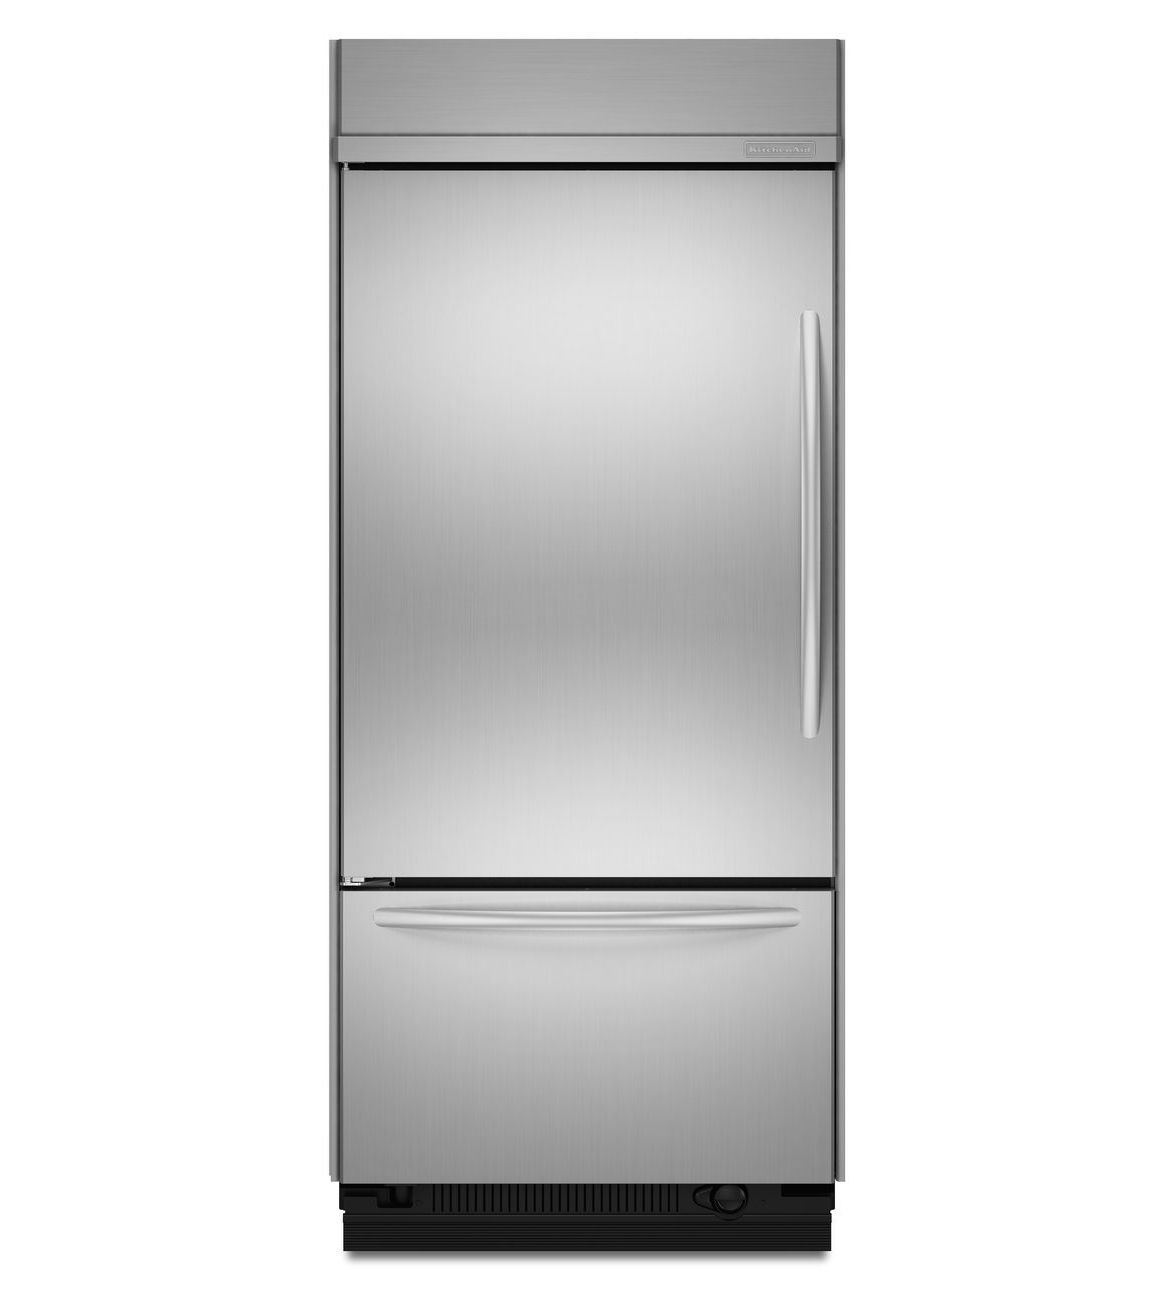 Shop Kitchenaid 20 8 Cu Ft Built In French Door: KitchenAid® 20.5 Cu. Ft. 36-Inch Width Built-In Bottom-Freezer Refrigerator, Architect® Series